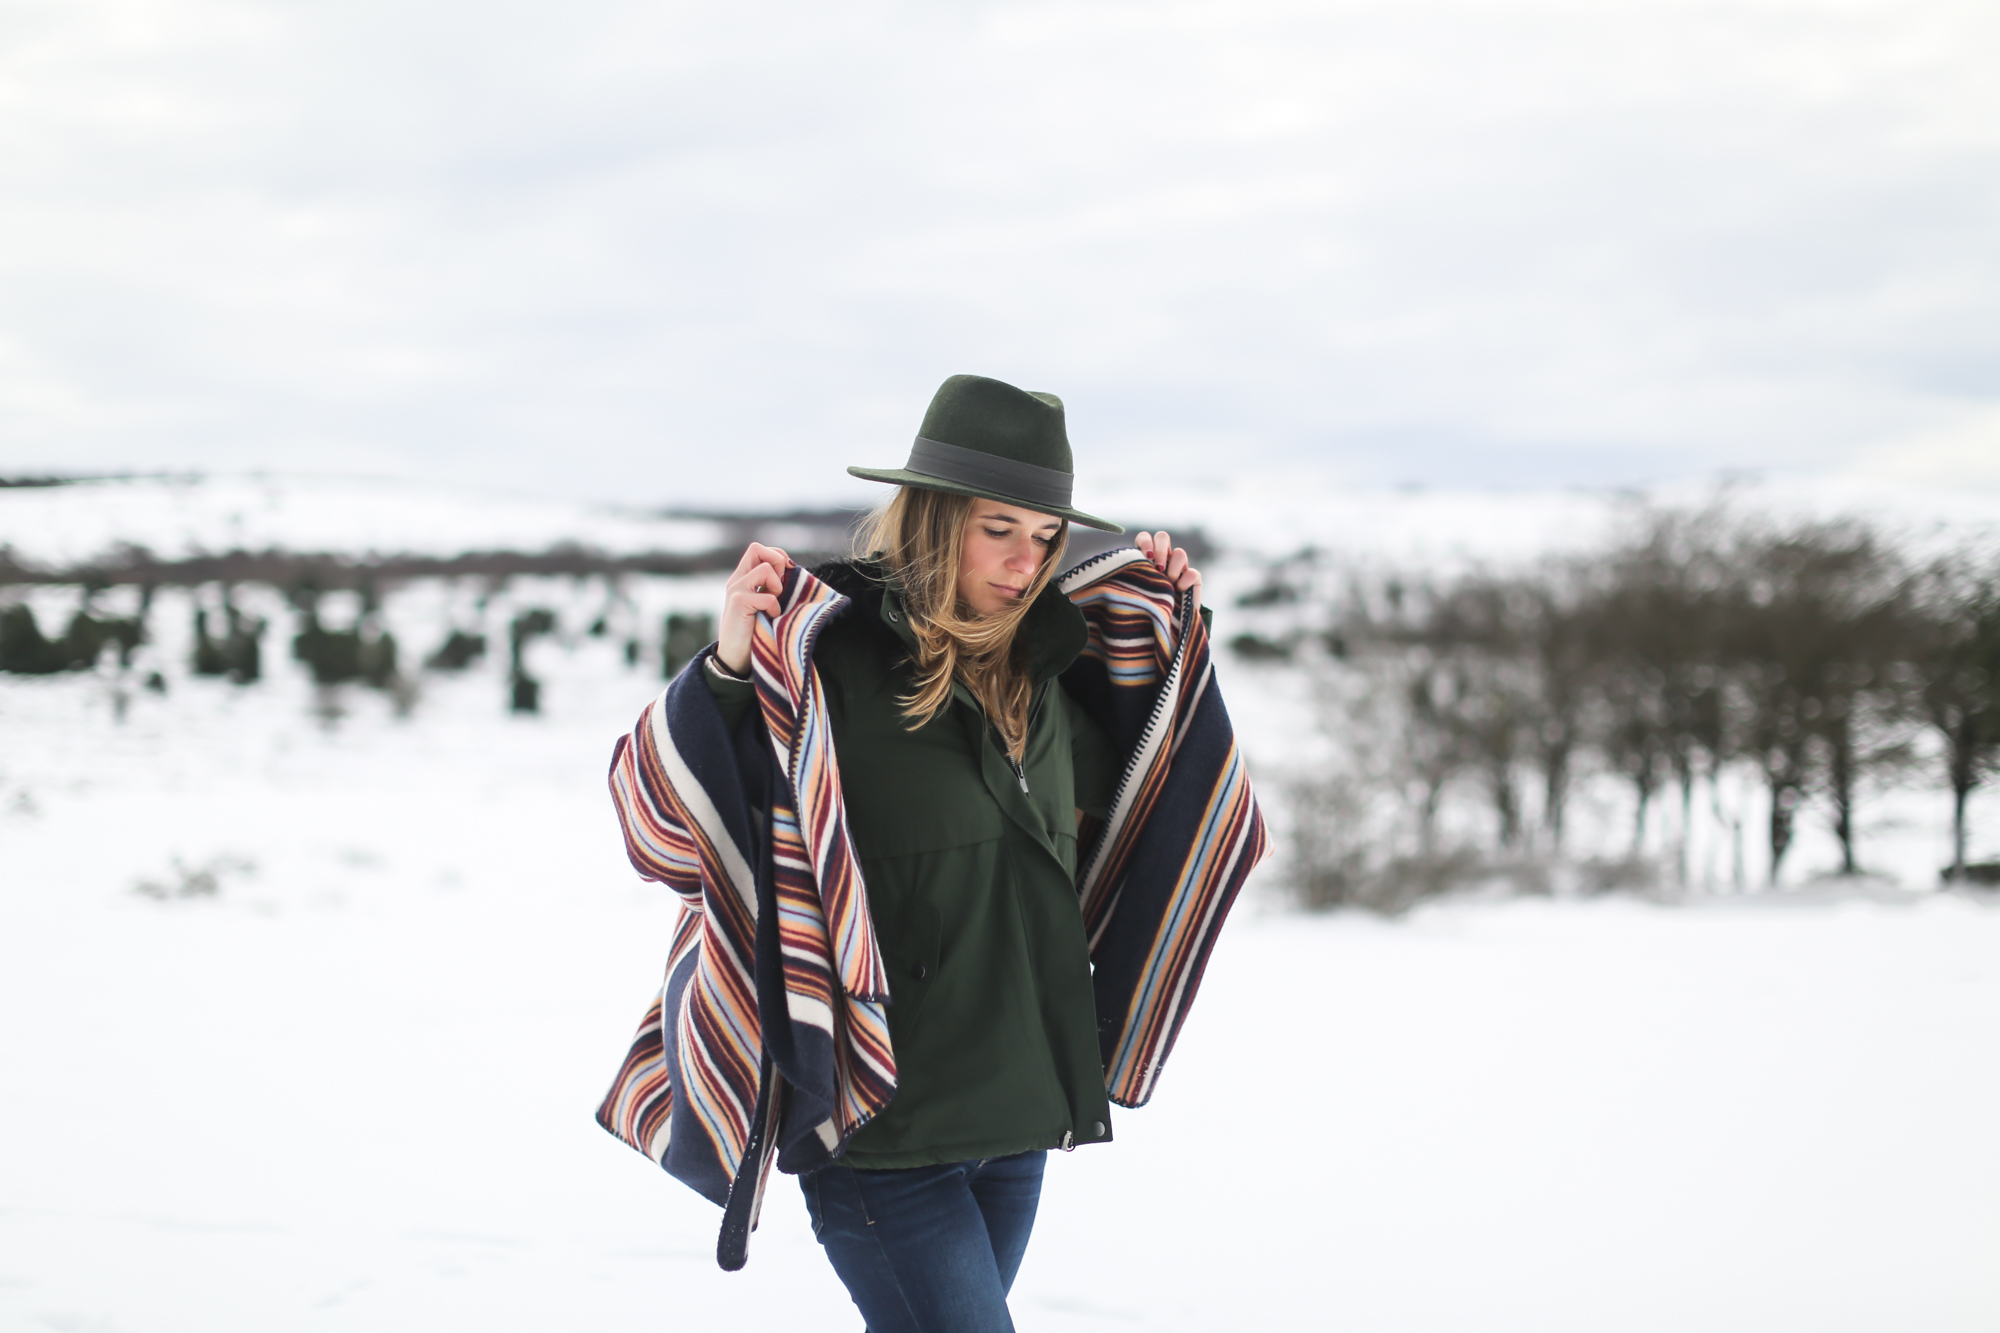 clochet_streetstyle_l'americaine_Andco_wool_poncho_panamajack_boots_snow